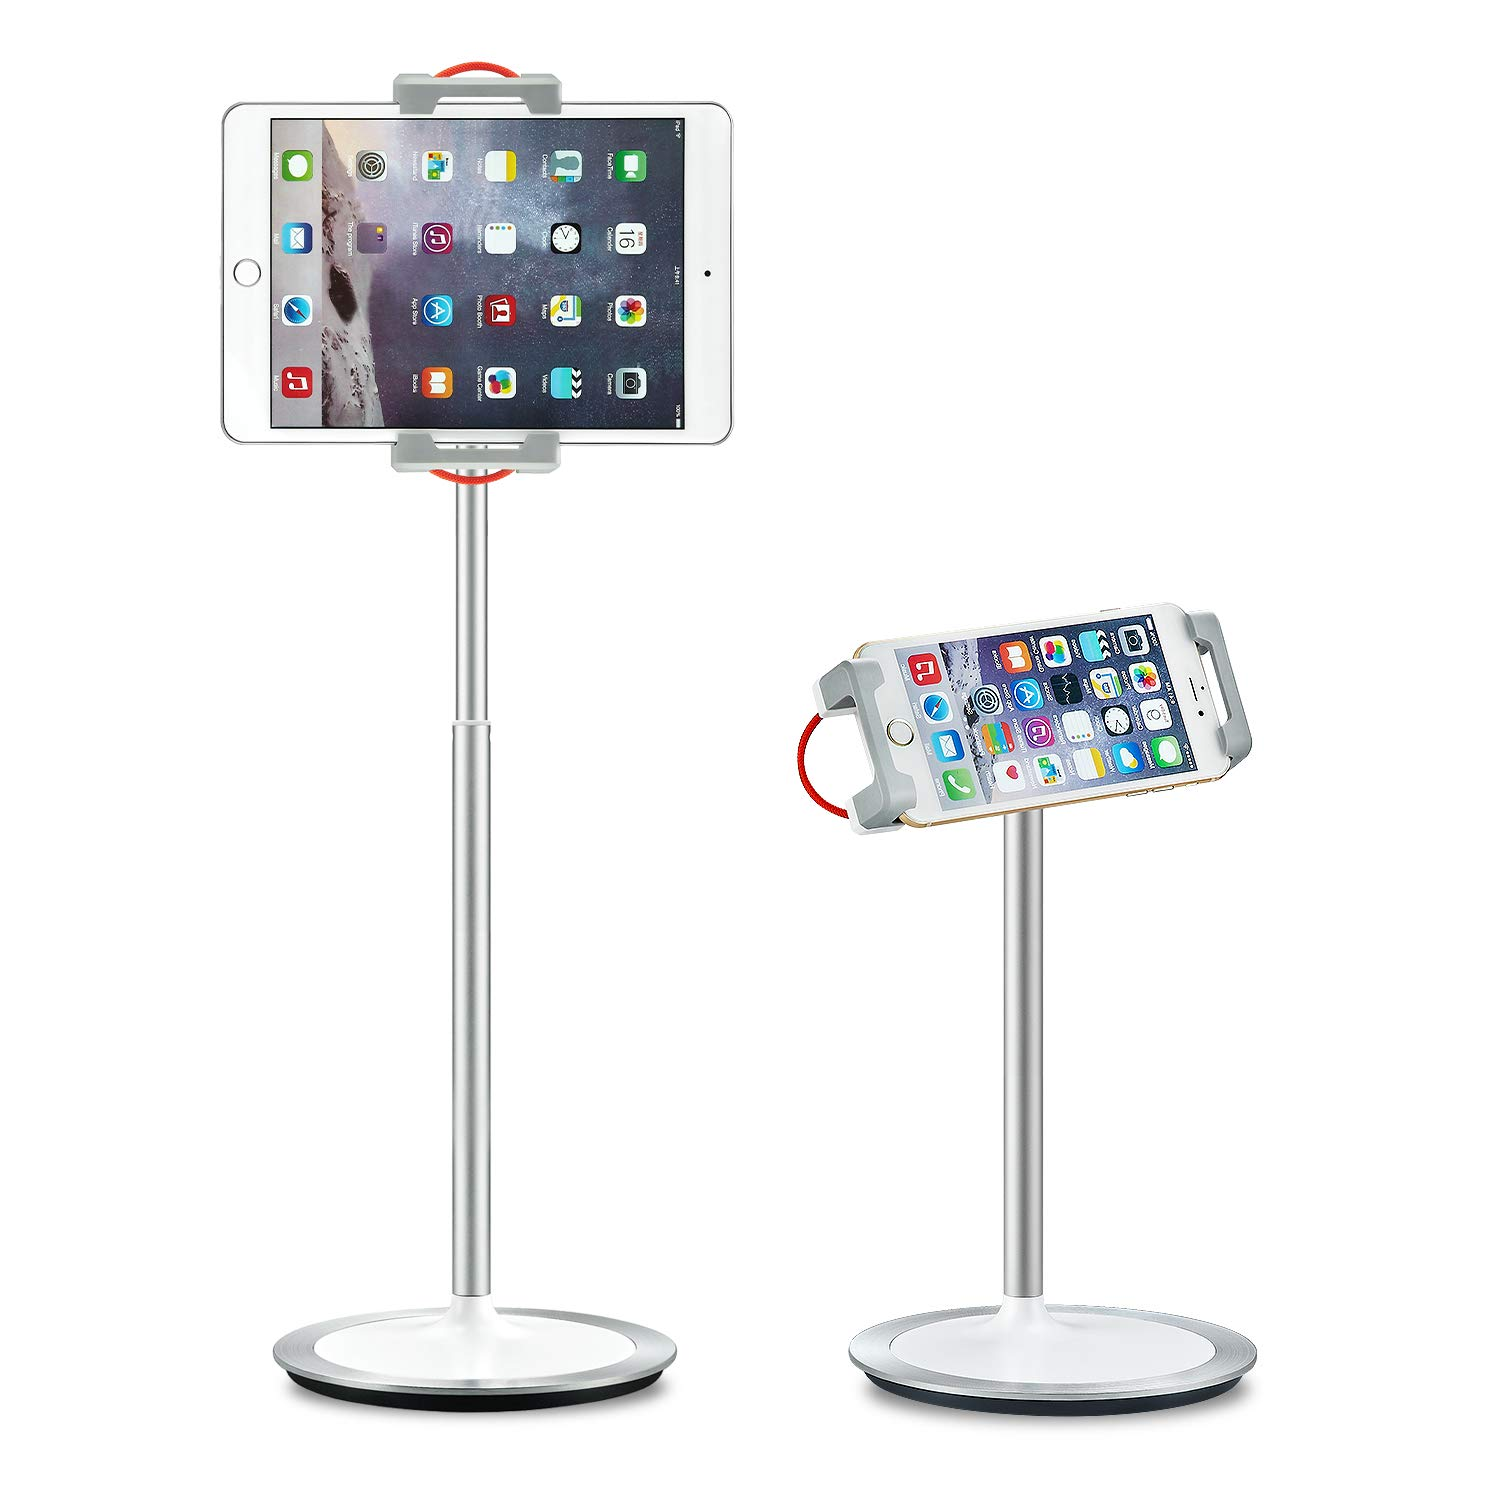 Saiji Tablet Stand Holder, Height Adjustable, 360 Degree Rotating, Aluminum Alloy Cradle Mount Dock for 4.7-12.9 inch iPhone Samsung, iPad, Nintendo Switch, Kindle, eBook Reader (Silver)